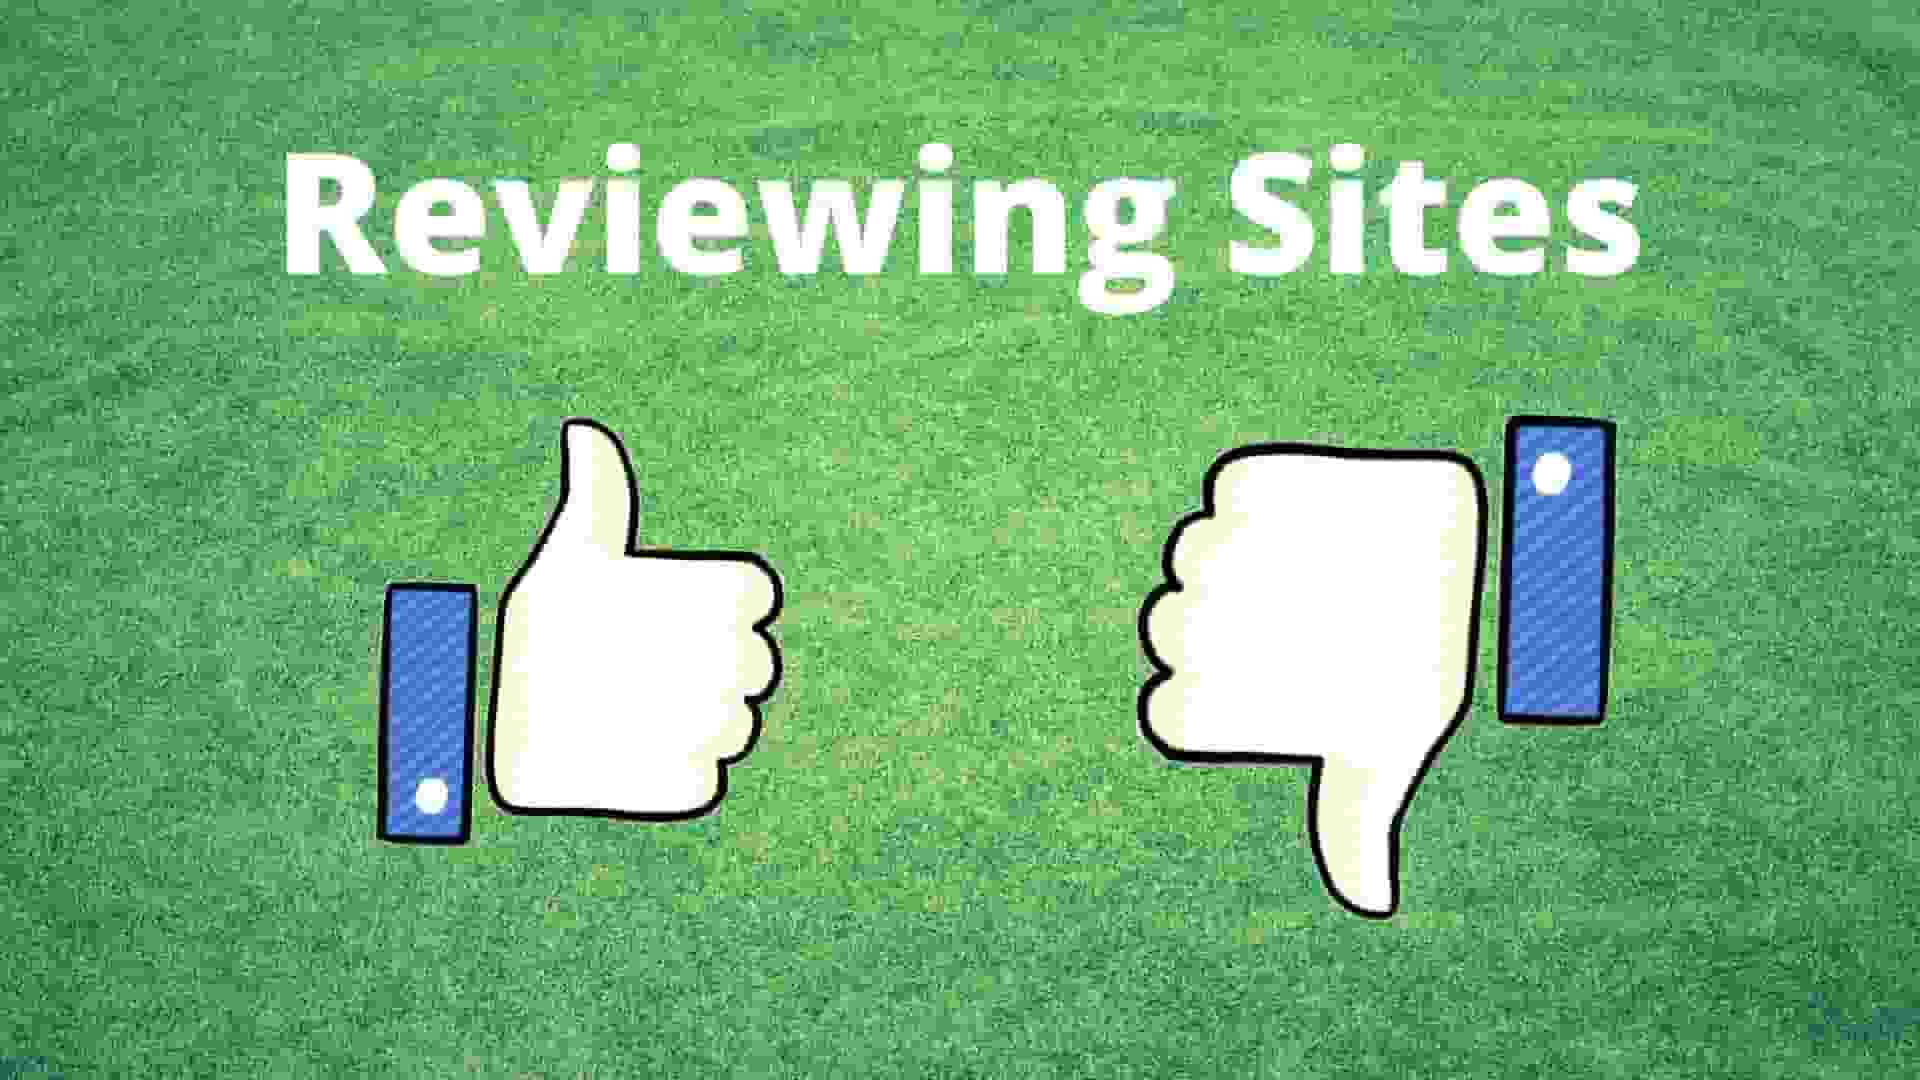 Side Business Ideas - Reviewing Sites